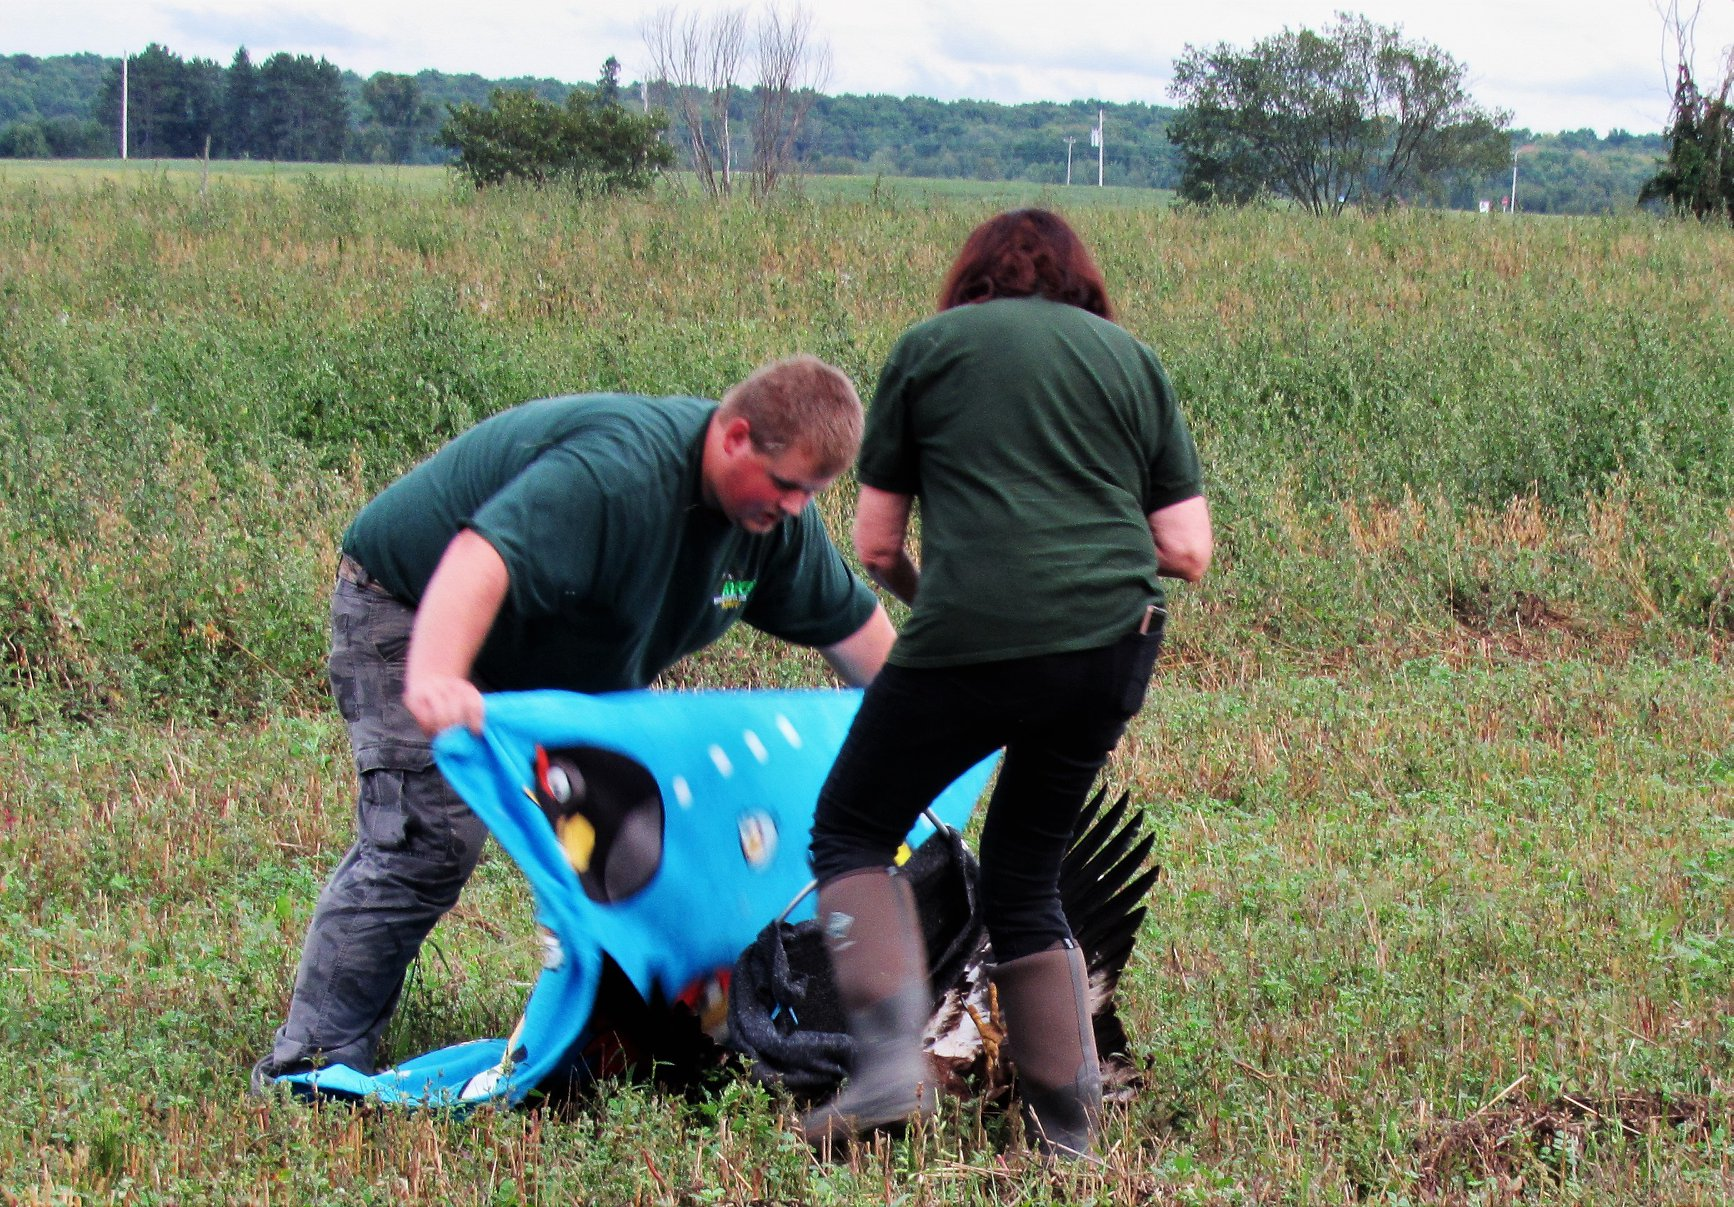 Hunter Petroskey helped in the capture of the bald eagle in the field in Polar, WI